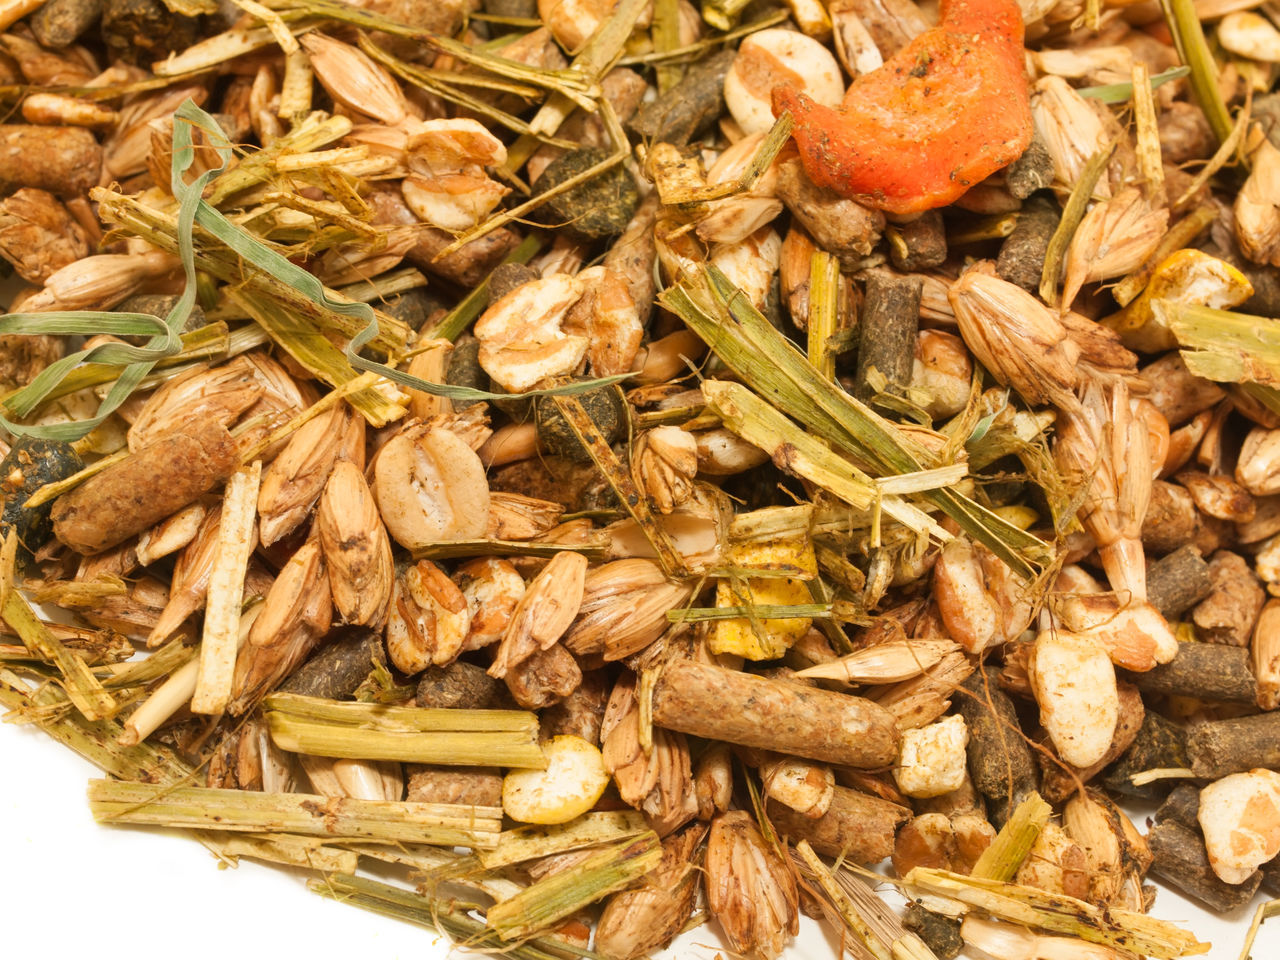 Close-up Day Dry Food Food And Drink Freshness Healthy Eating Horse Food Large Group Of Objects Muslie Nature No People Outdoors Wheat